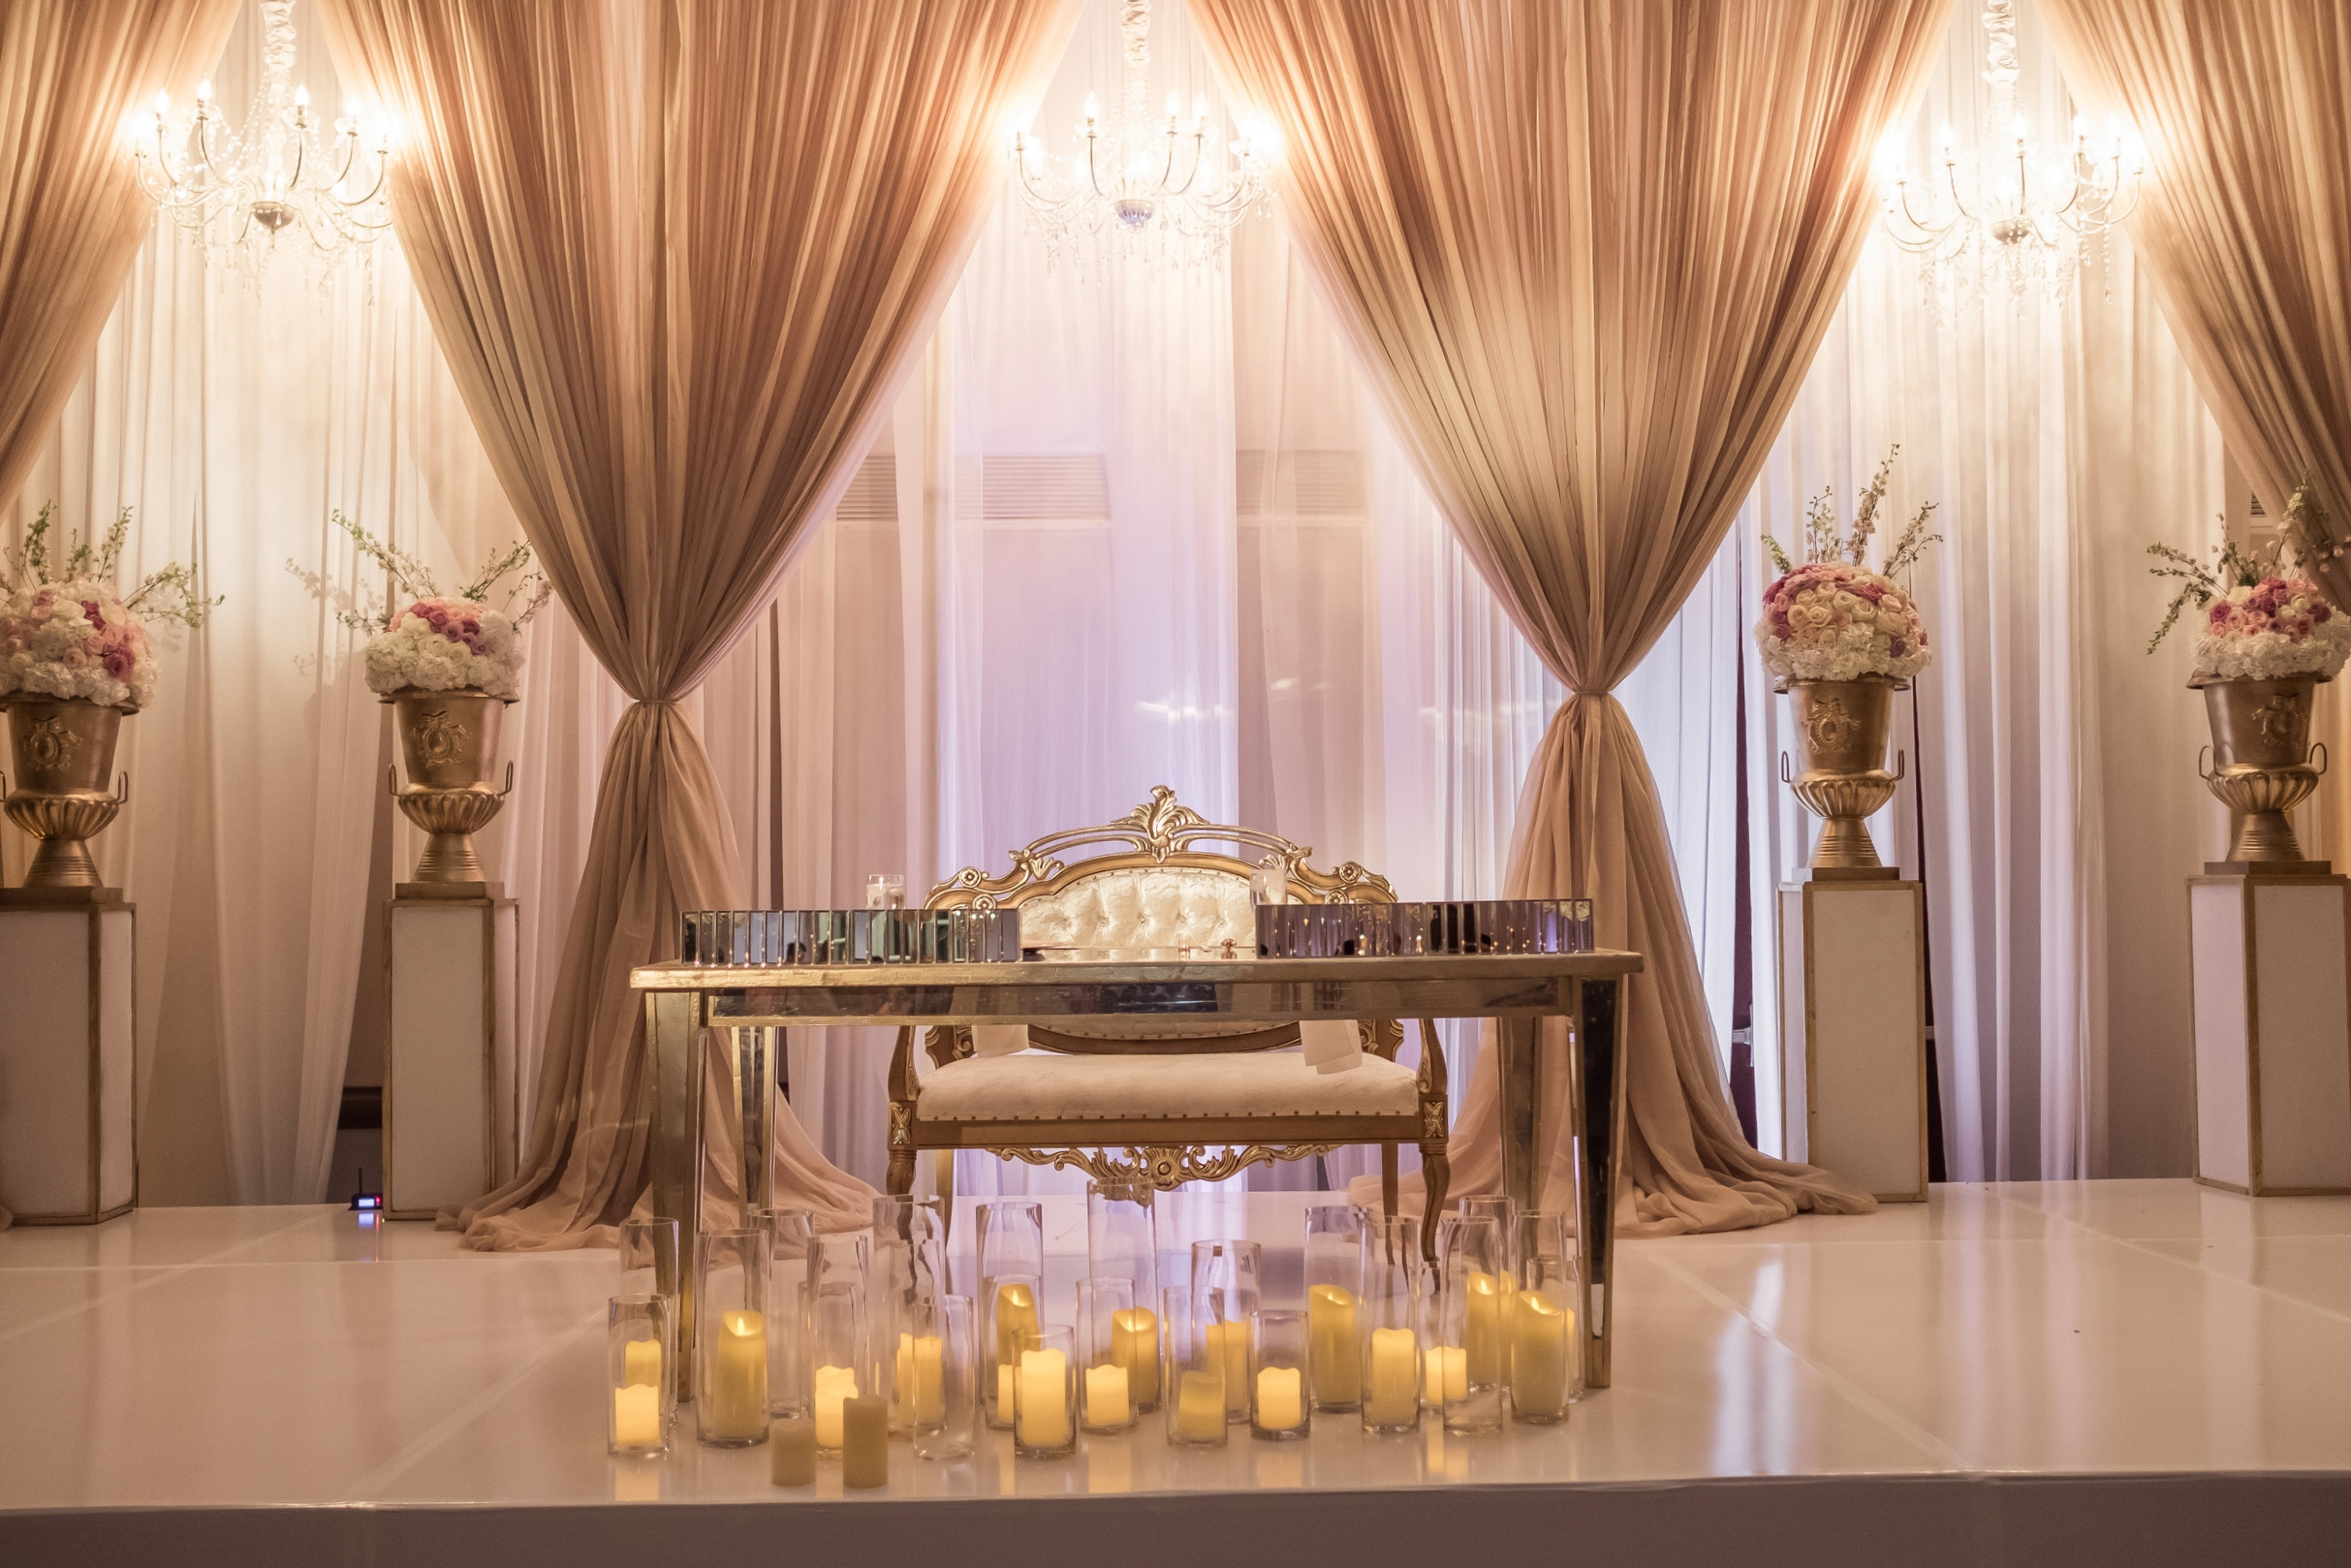 Event Design & Decor - Have the ideas but need help pieces them together…..